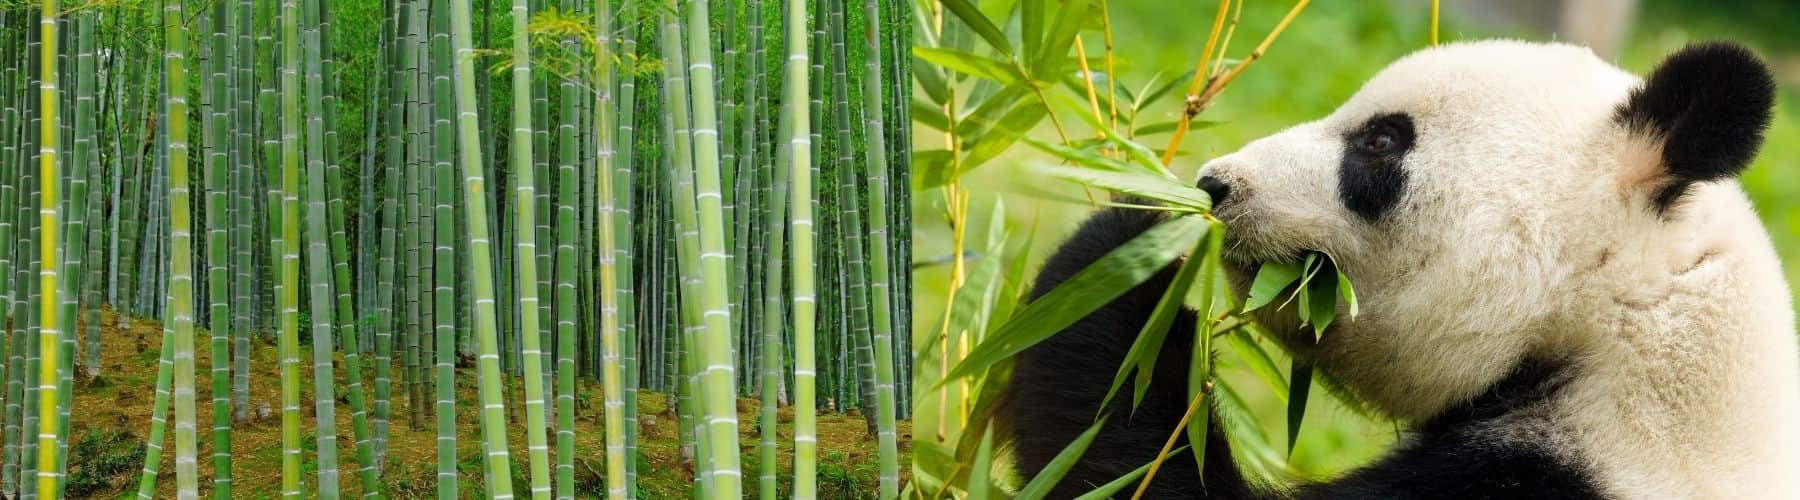 Moso bamboo is not the variety pandas eat, hence best for bulk toothbrushes